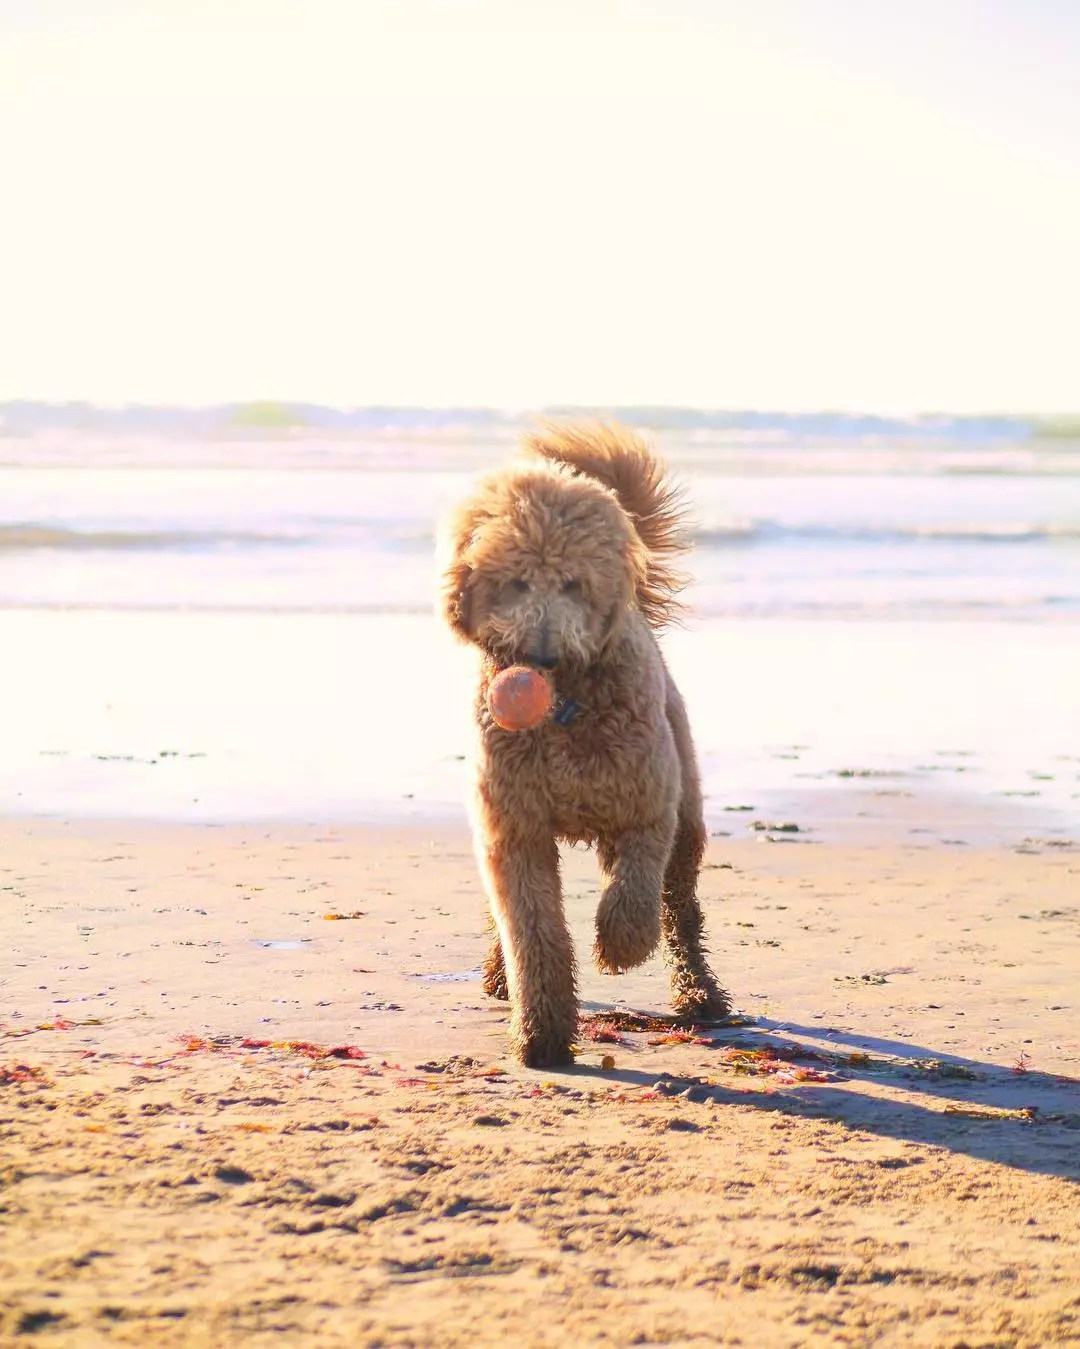 Golden Doodle dog plays with a ball on the beach. Photo by Instagram user @montanathedood